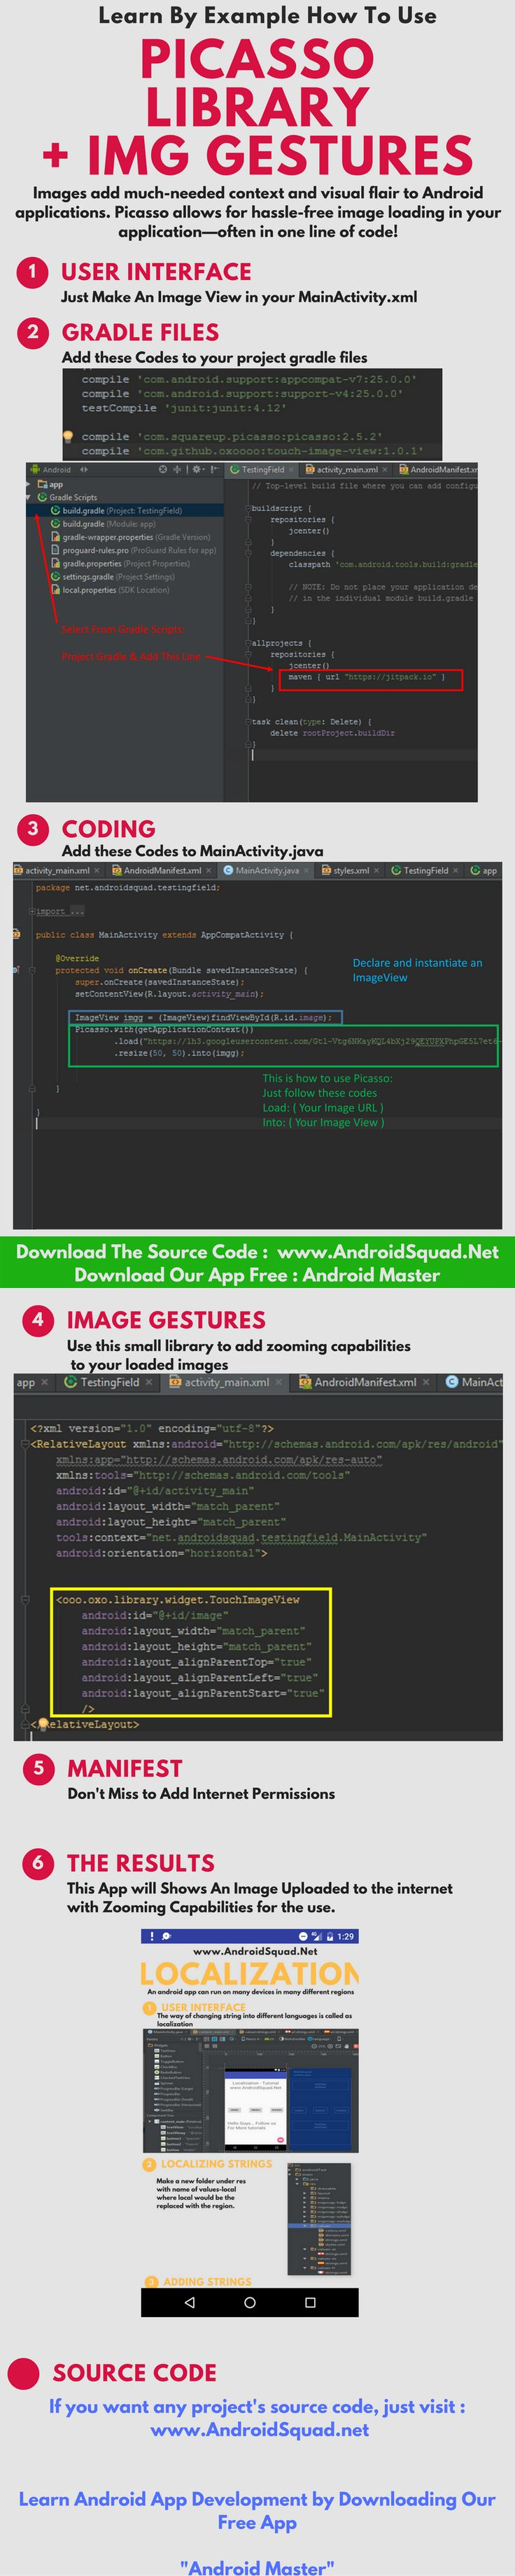 How to use picasso library how to load images using picasso library adding gestures to pictures in android app